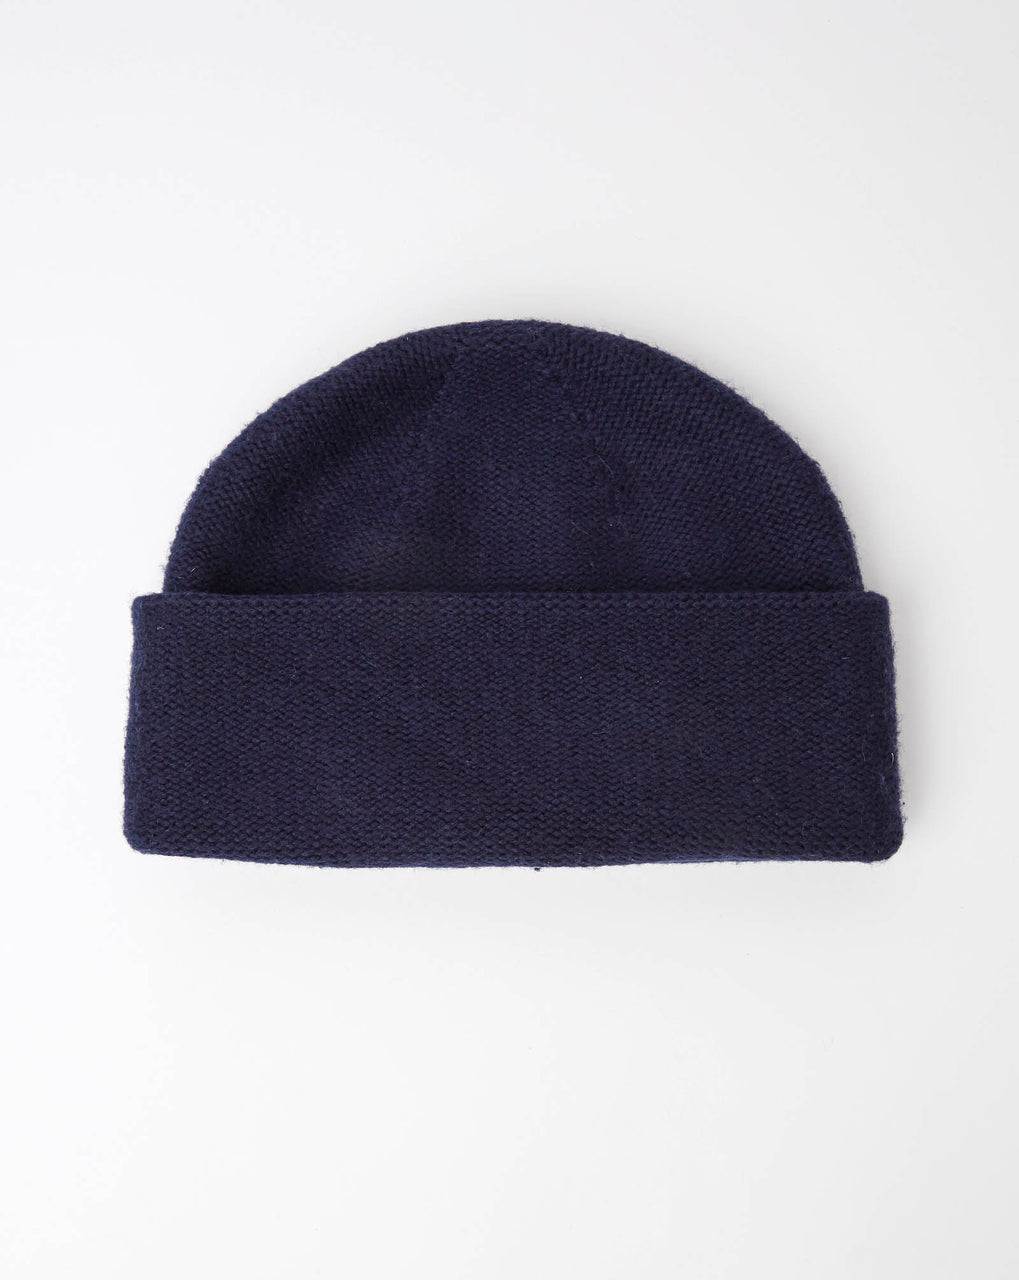 Atelier Alpinisté Model 2 Merino Double Layer Beanie (Navy)